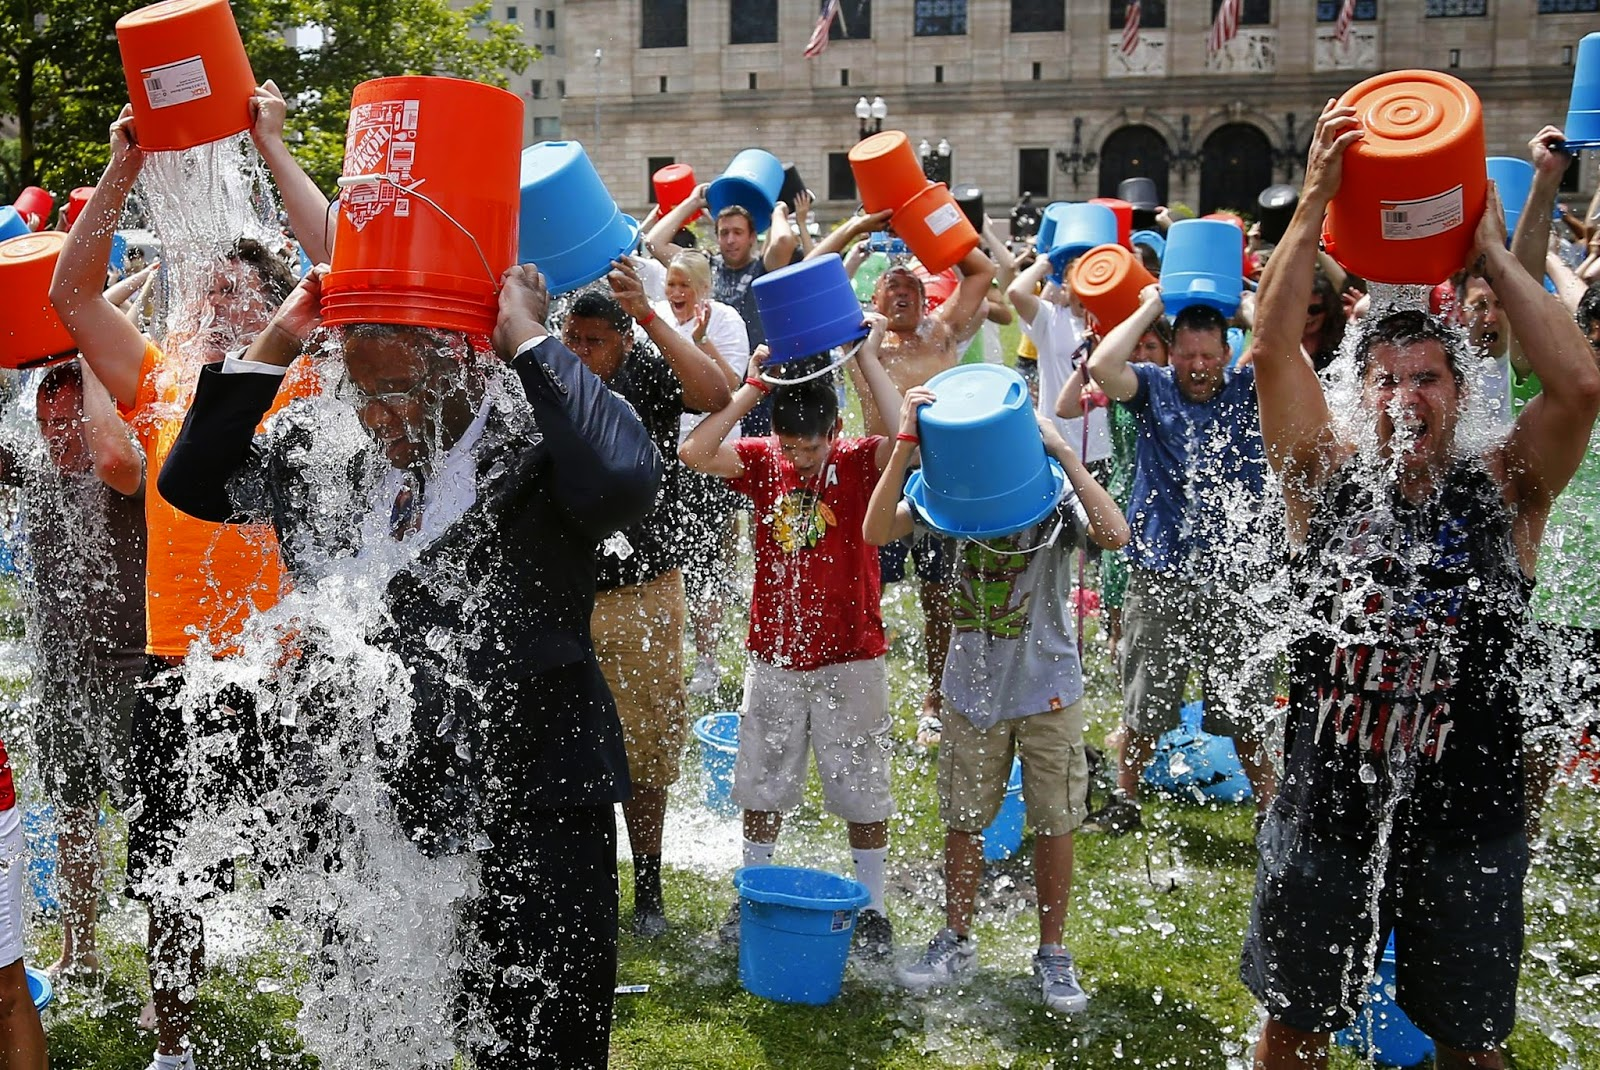 Reasons for the Virality of Ice Bucket Challenge